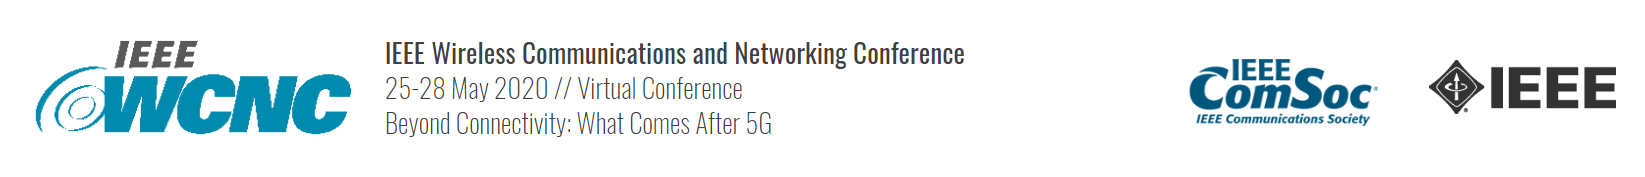 2020 IEEE Wireless Communications and Networking Conference (WCNC)